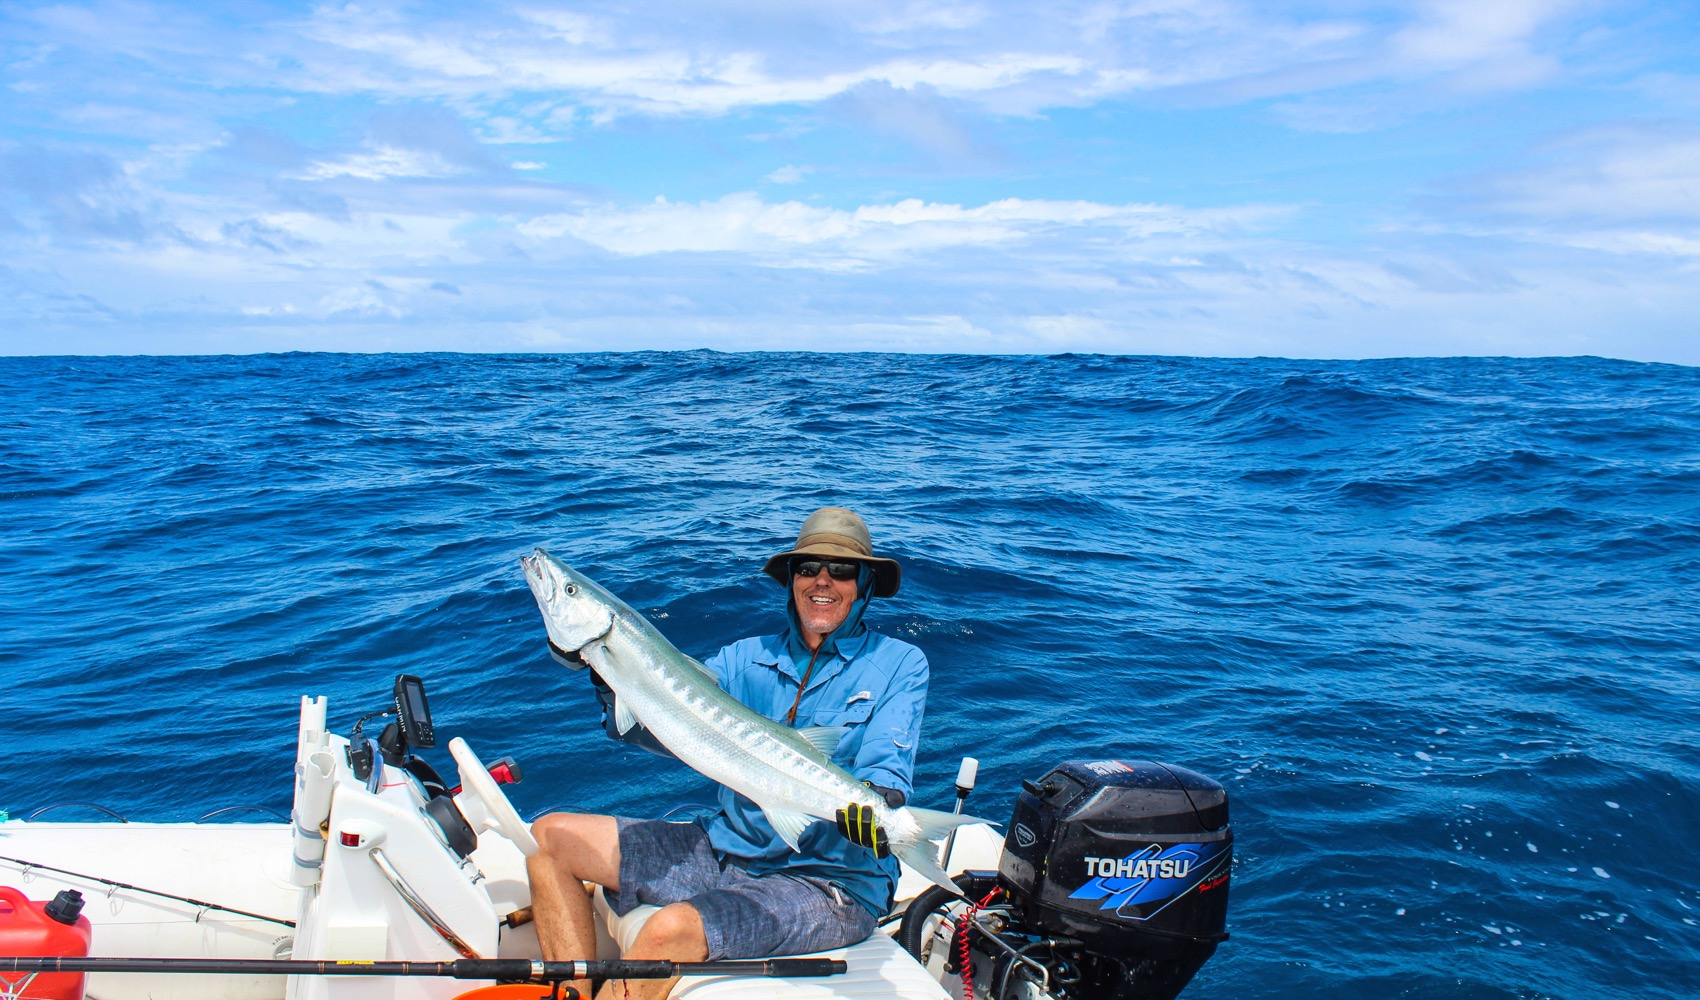 Barracuda always put up a great fight!